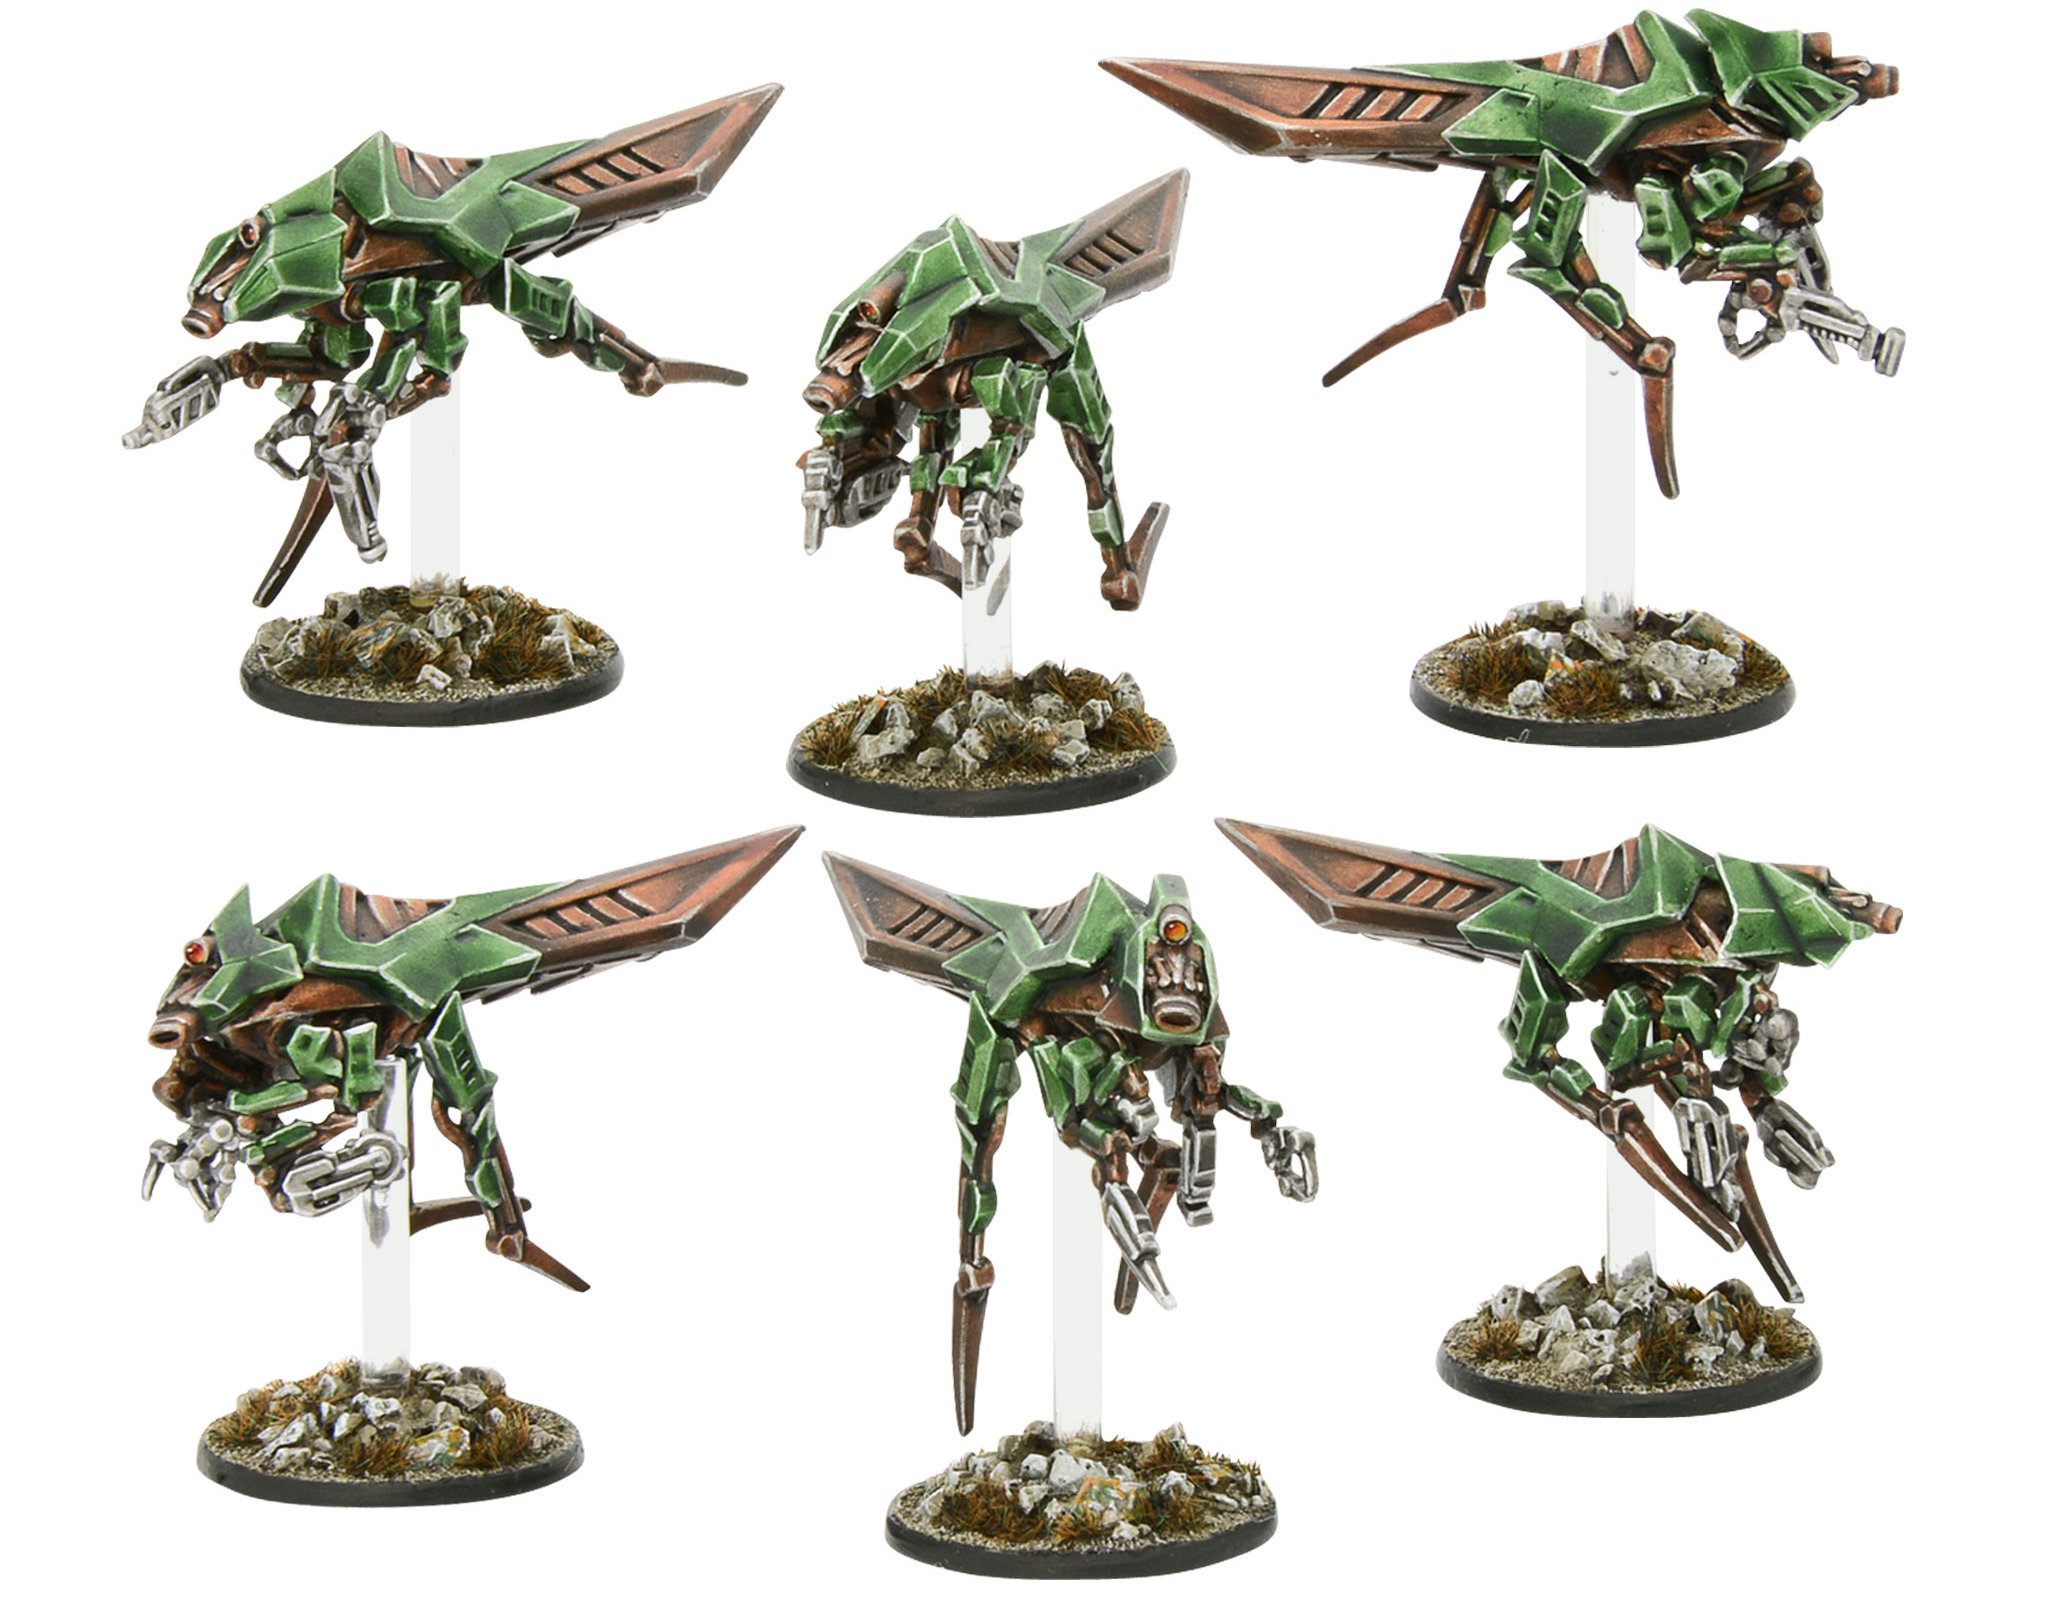 New Beyond the Gates of Antares Virai Constructor Squad